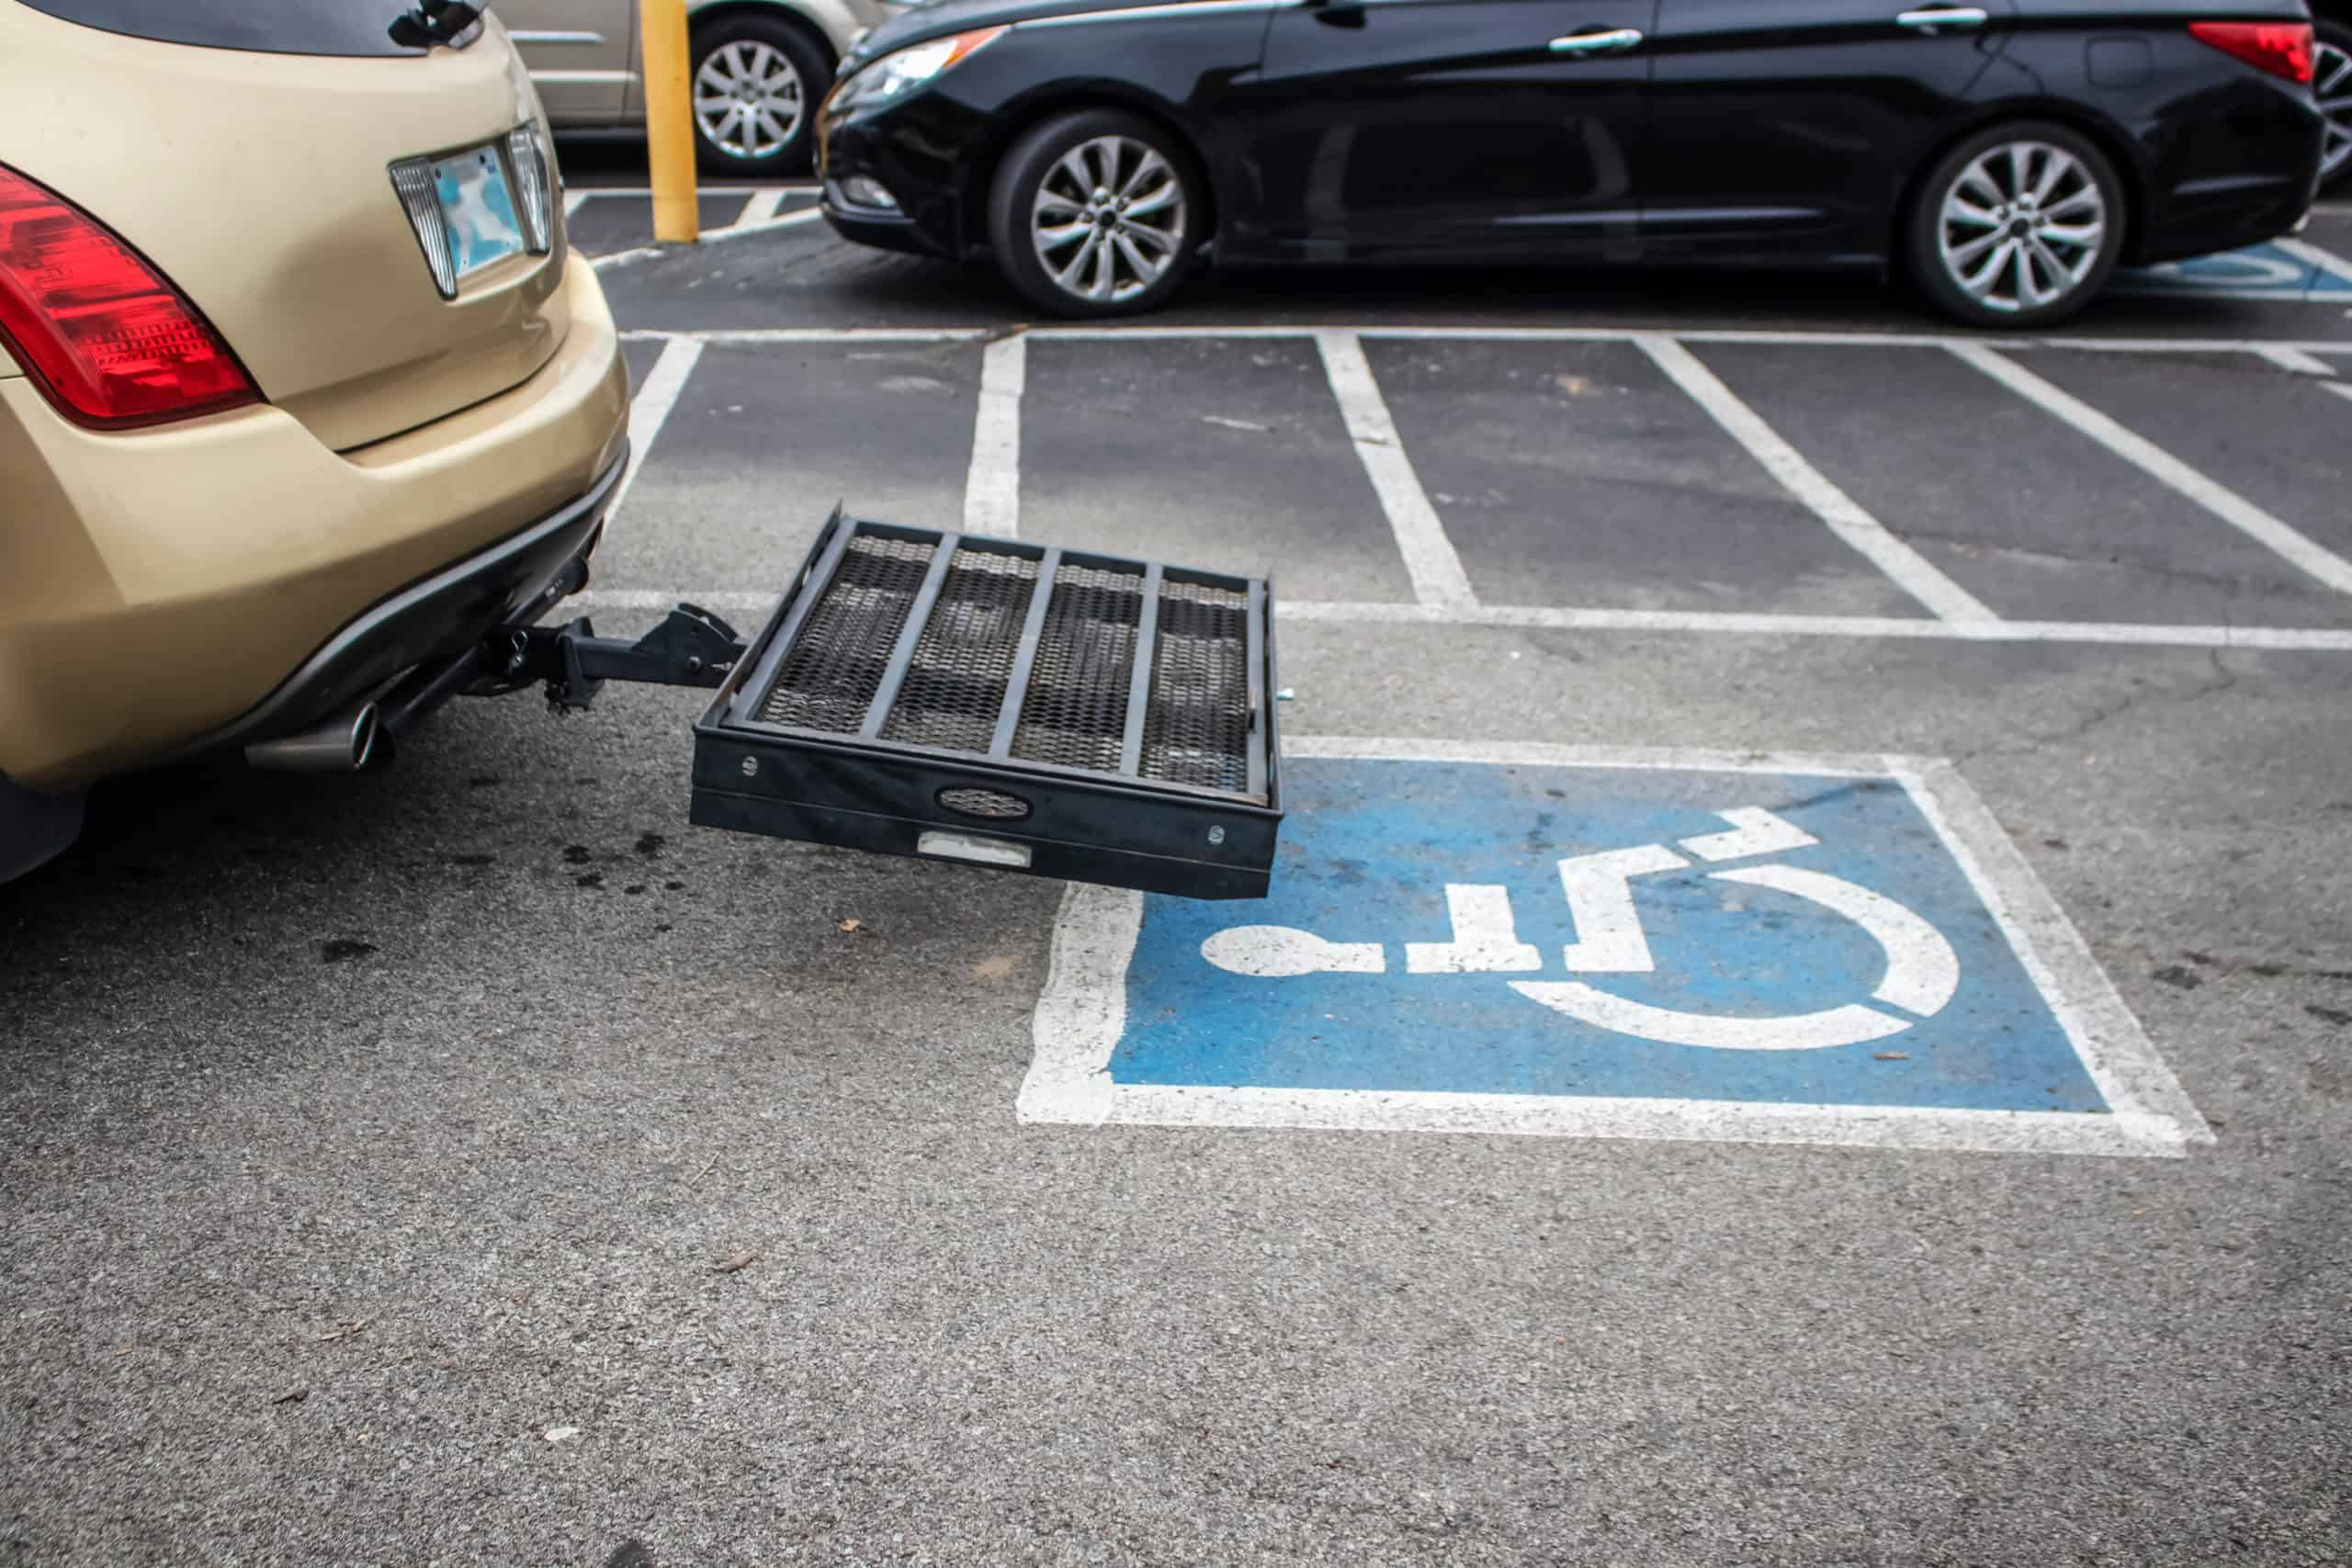 Wheelchair Carrier for Car in handicapped parking space in parking lot